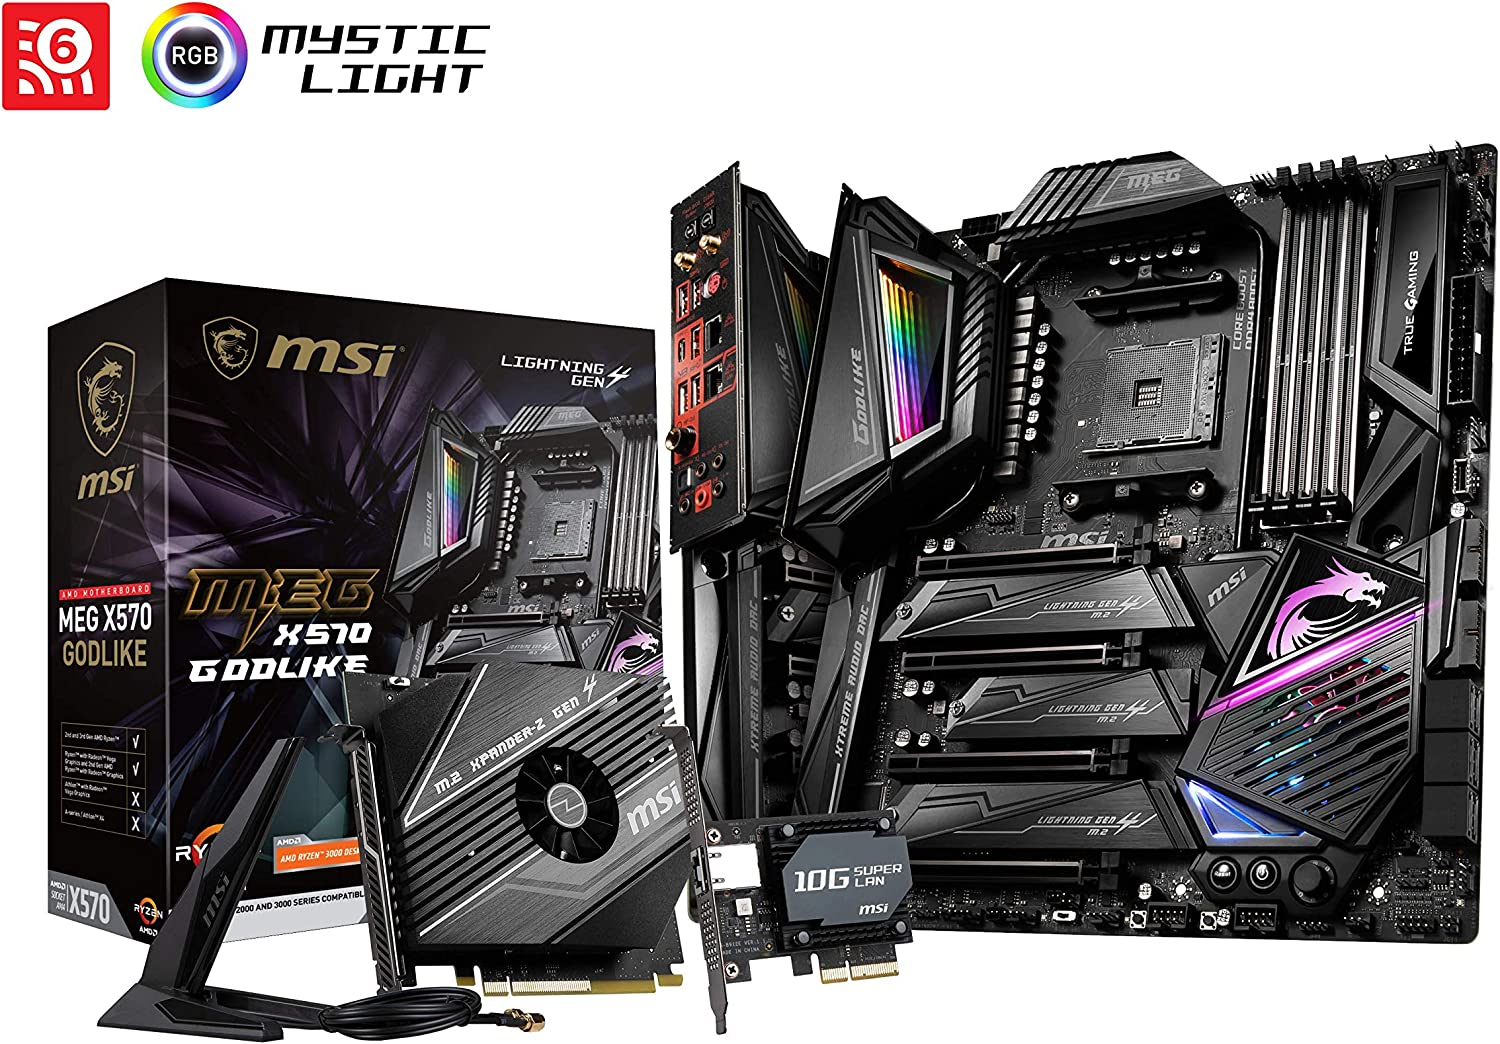 MSI Godlike AM4 AMD X570 ATX DDR4-SDRAM Motherboard